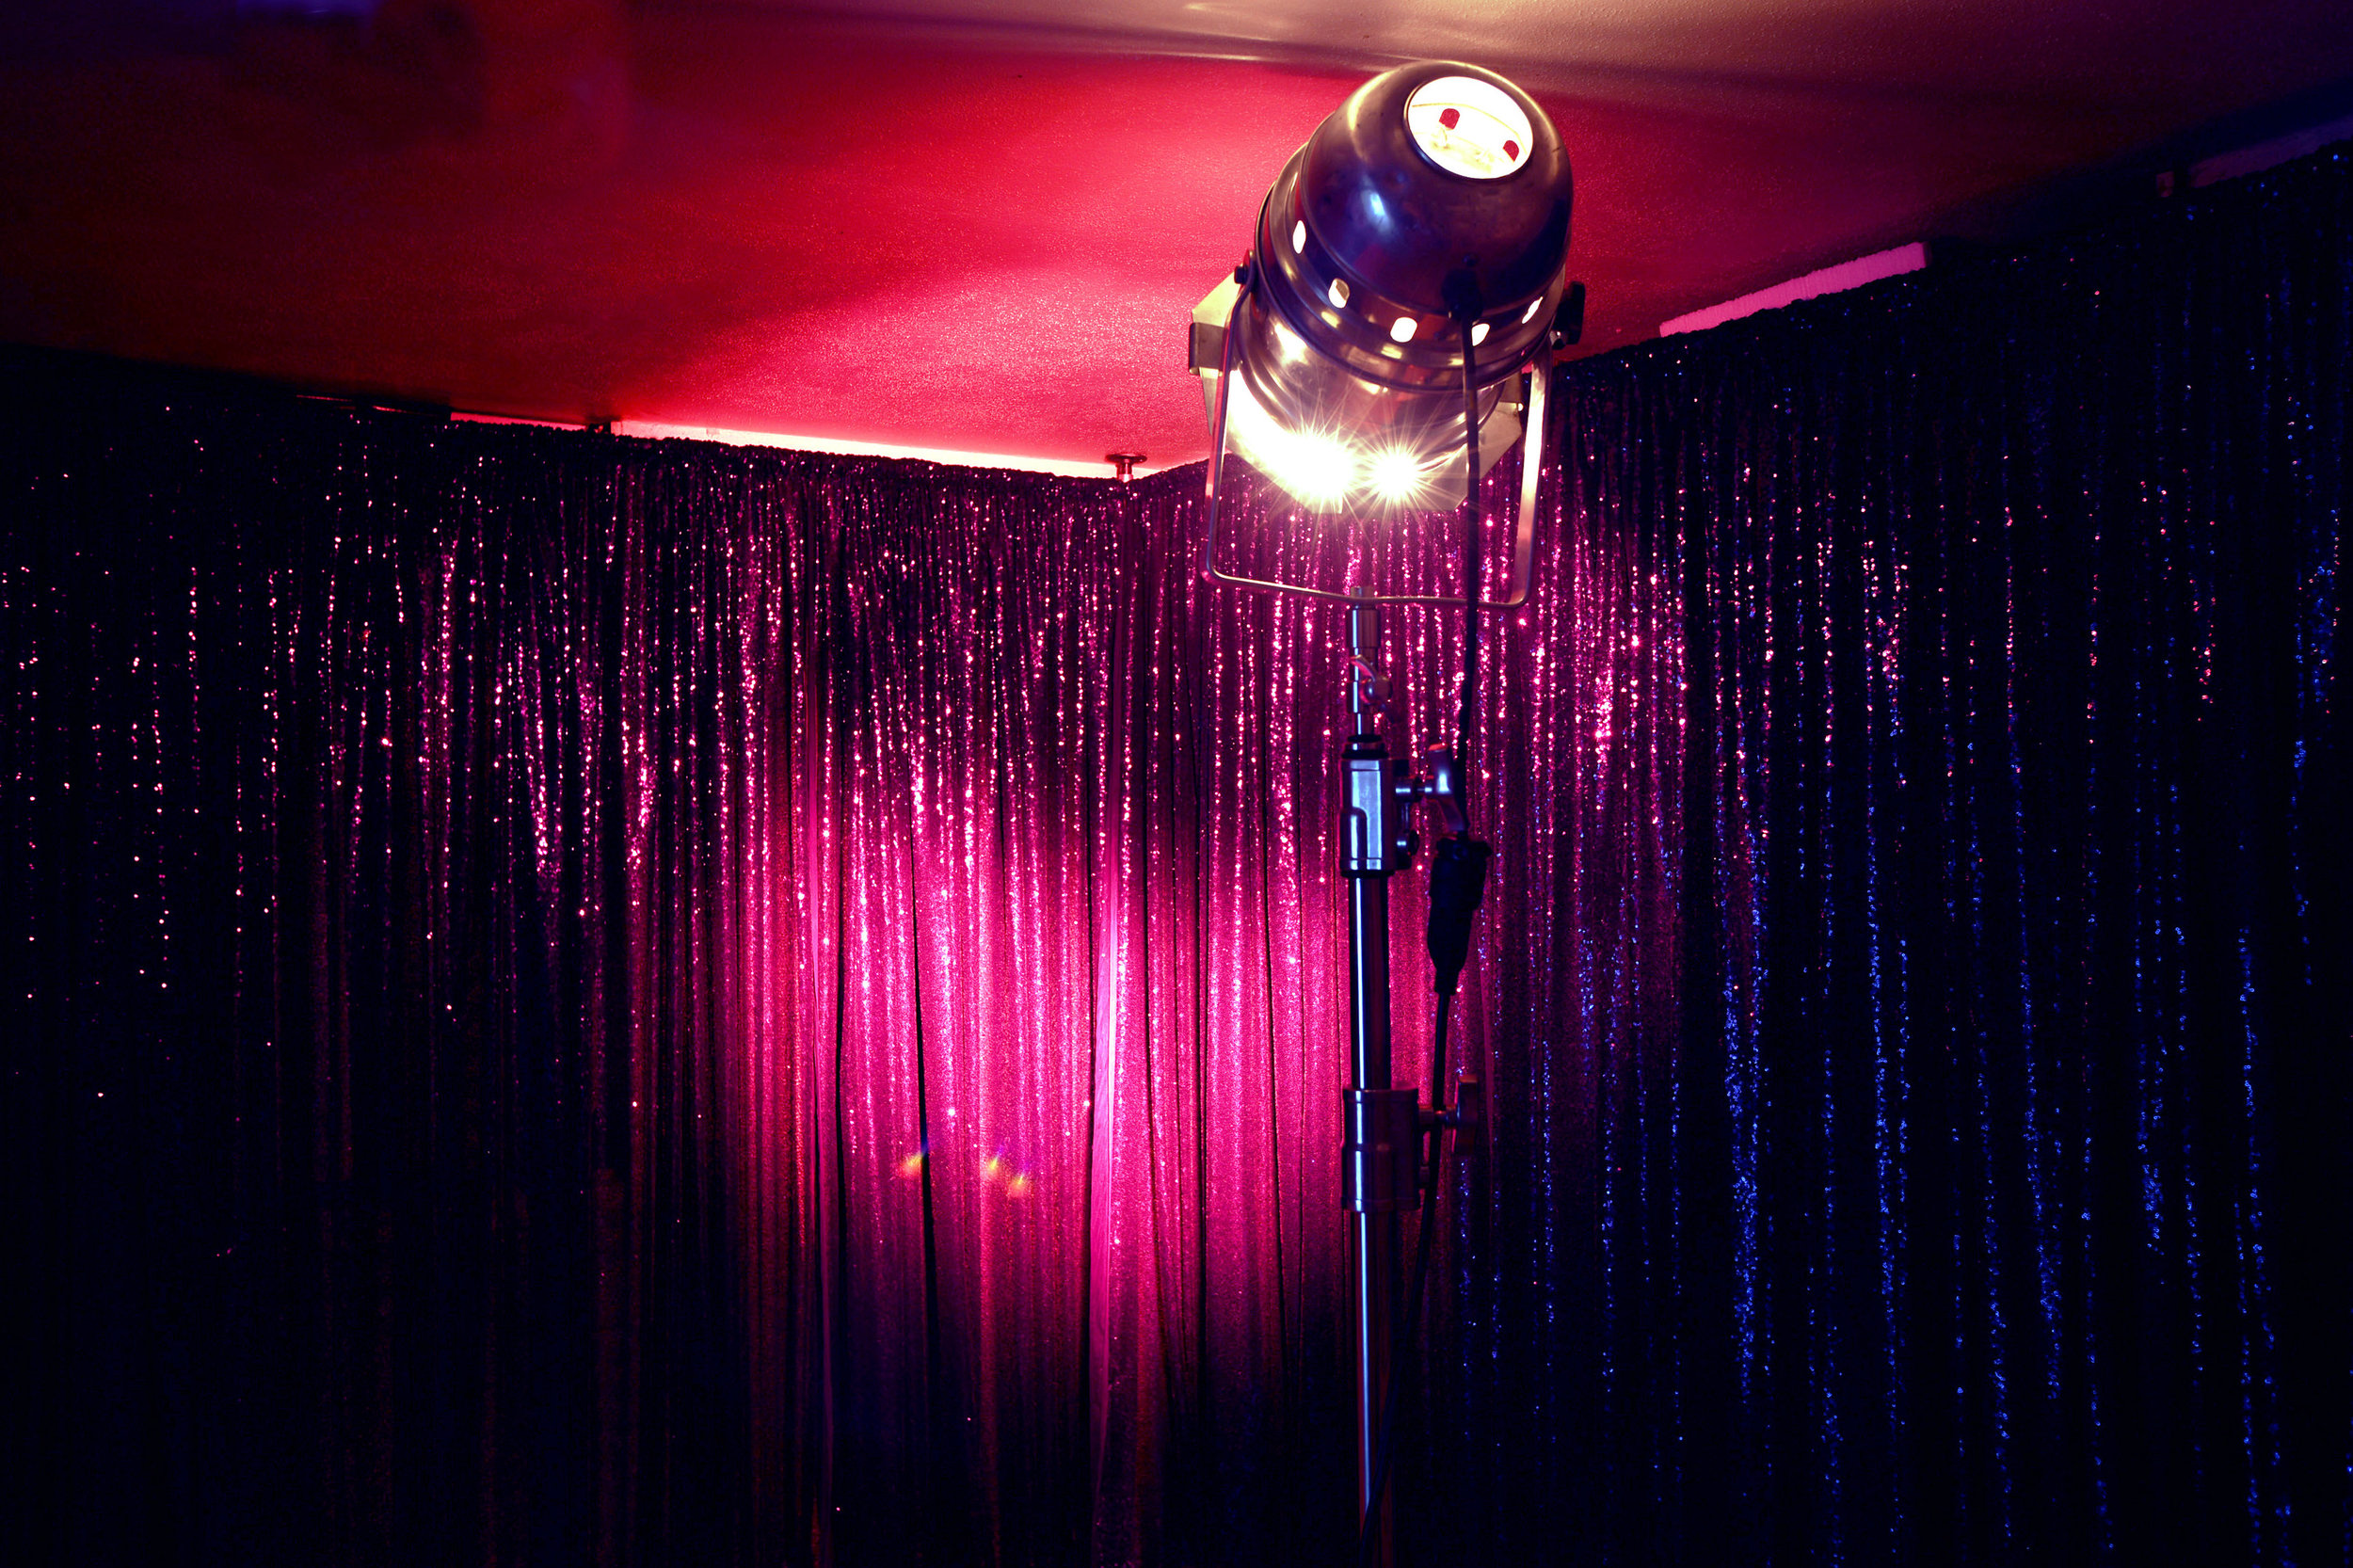 FOR ALL THE WRONG REASONS  sequin curtains, stage light, sound dimensions variable 2018